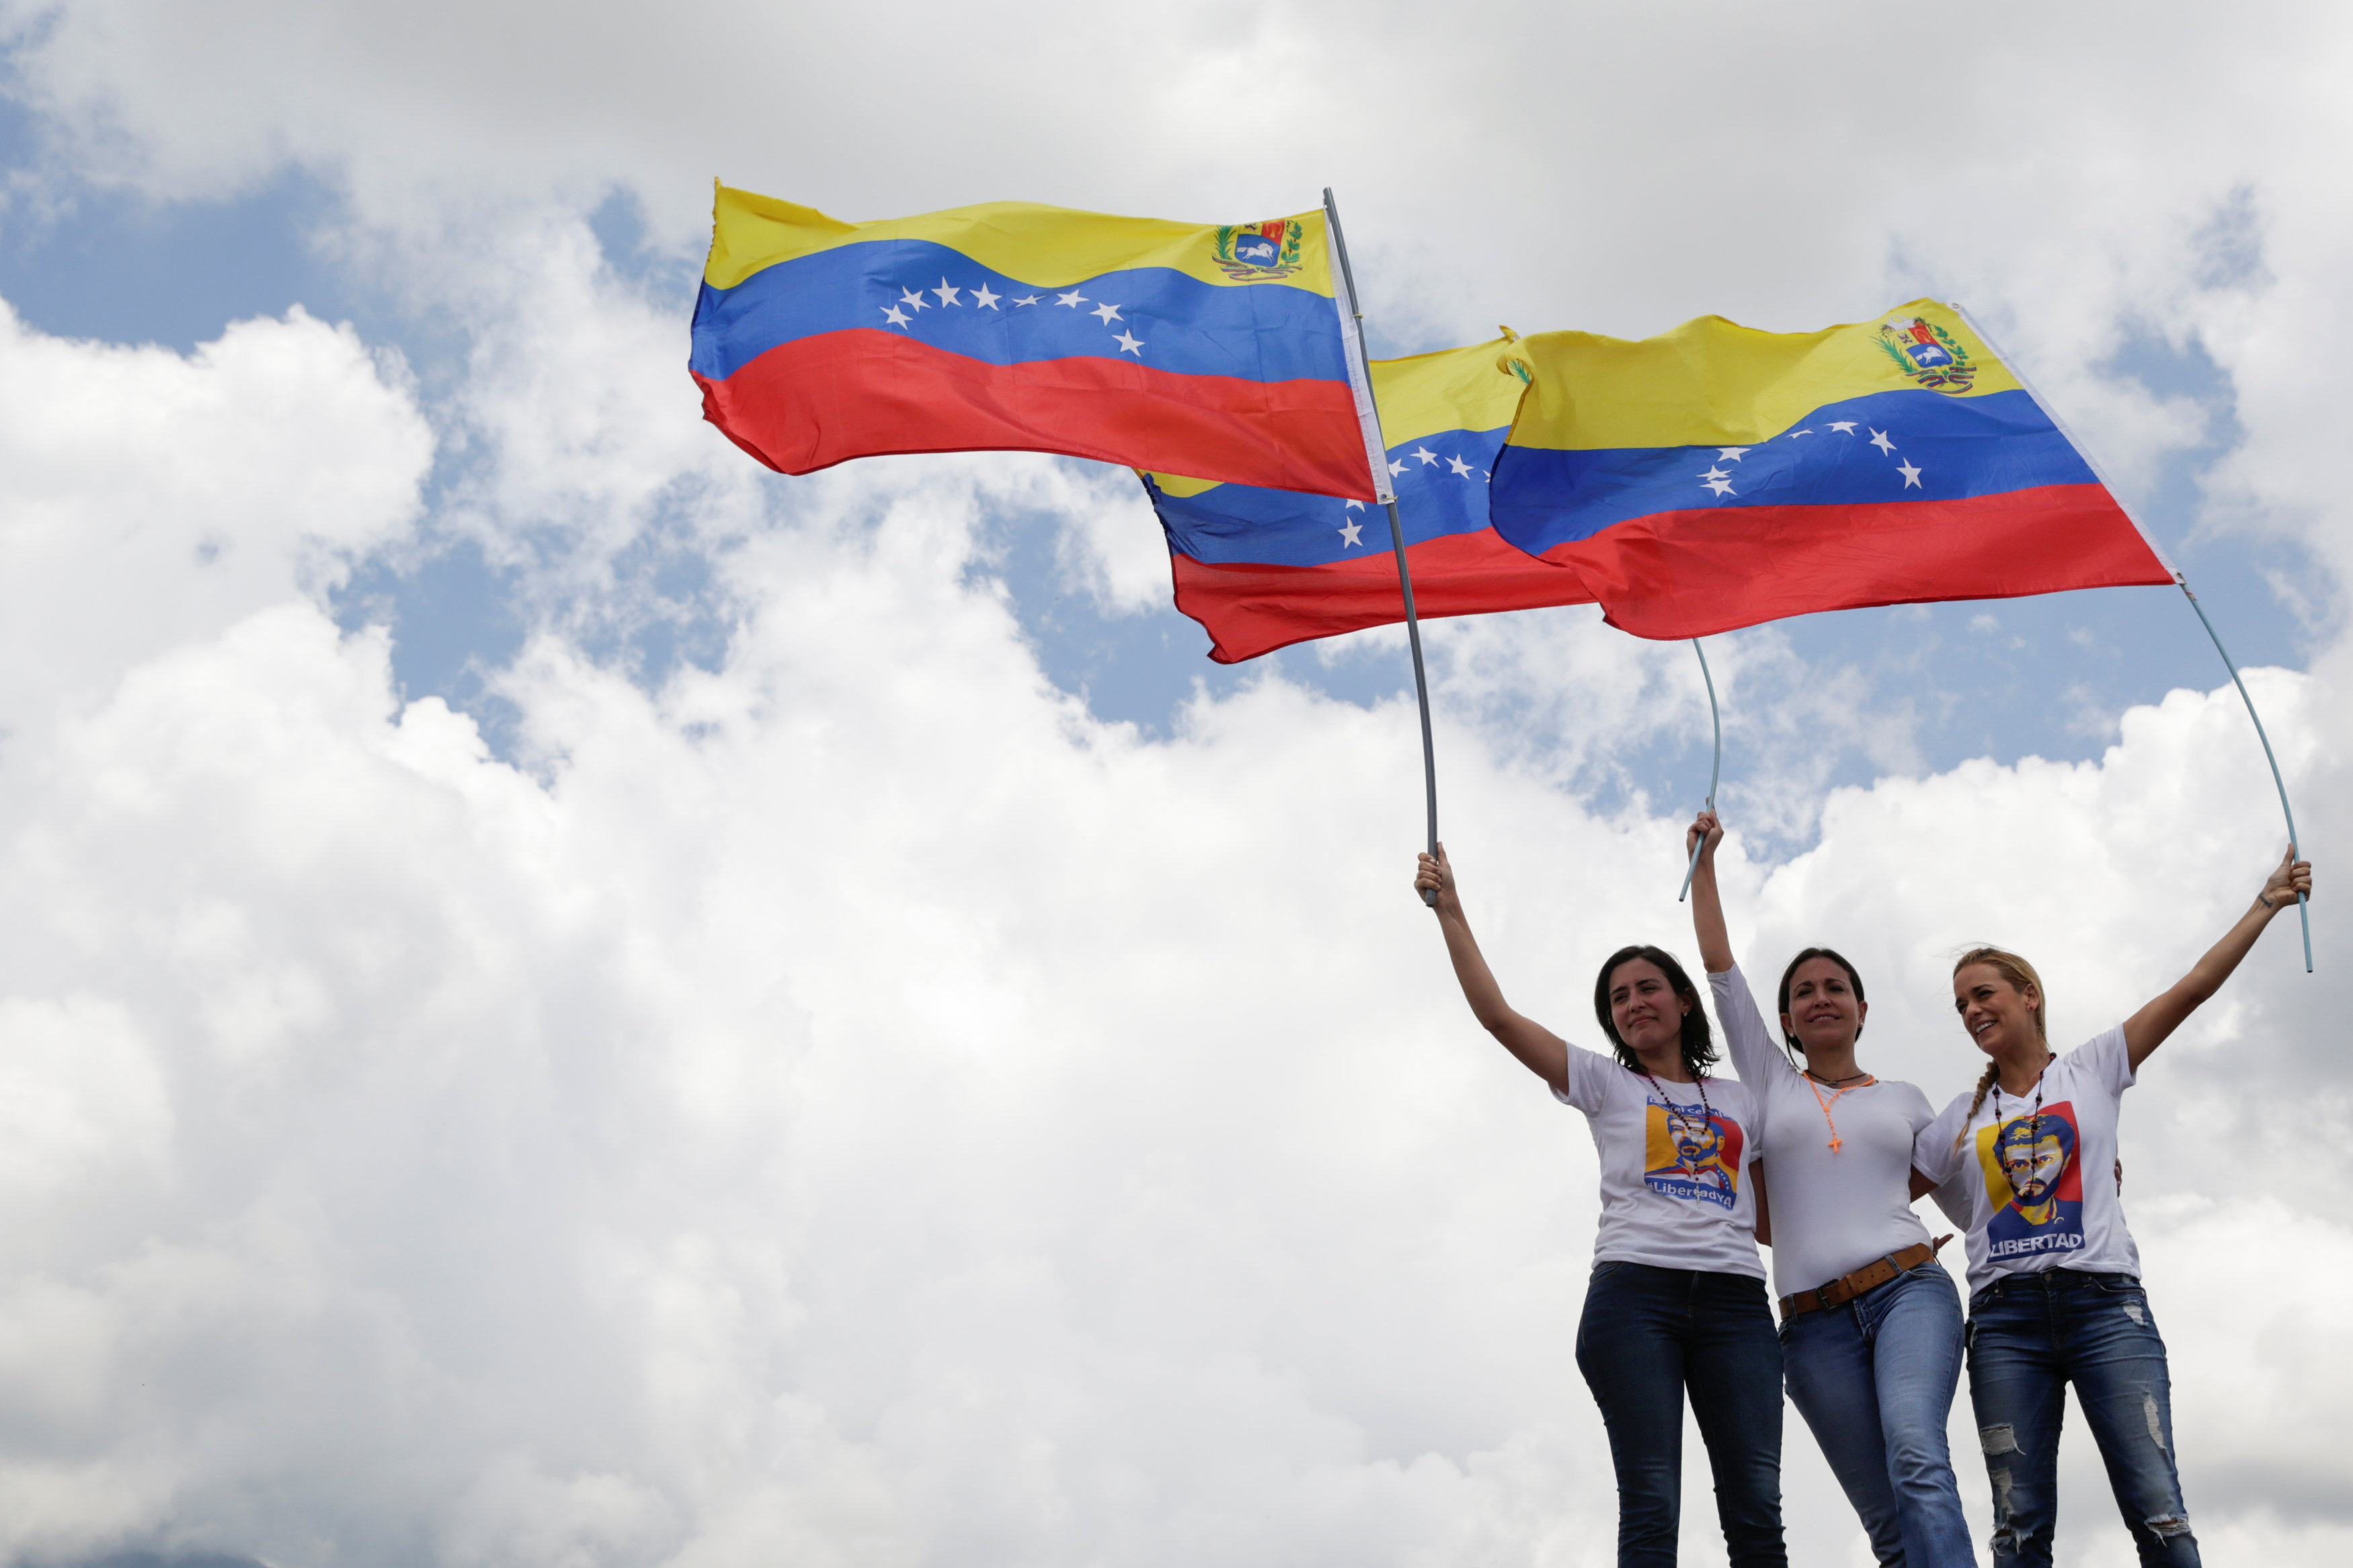 Lilian Tintori (R), wife of jailed Venezuelan opposition leader Leopoldo Lopez attends a rally to demand a referendum to remove Venezuela's President Nicolas Maduro, next to Venezuelan opposition leader Maria Corina Machado (C) and Patricia Ceballos, mayor of San Cristobal and wife of jailed former mayor Daniel Ceballos, in Caracas, Venezuela October 22, 2016. REUTERS/Marco Bello